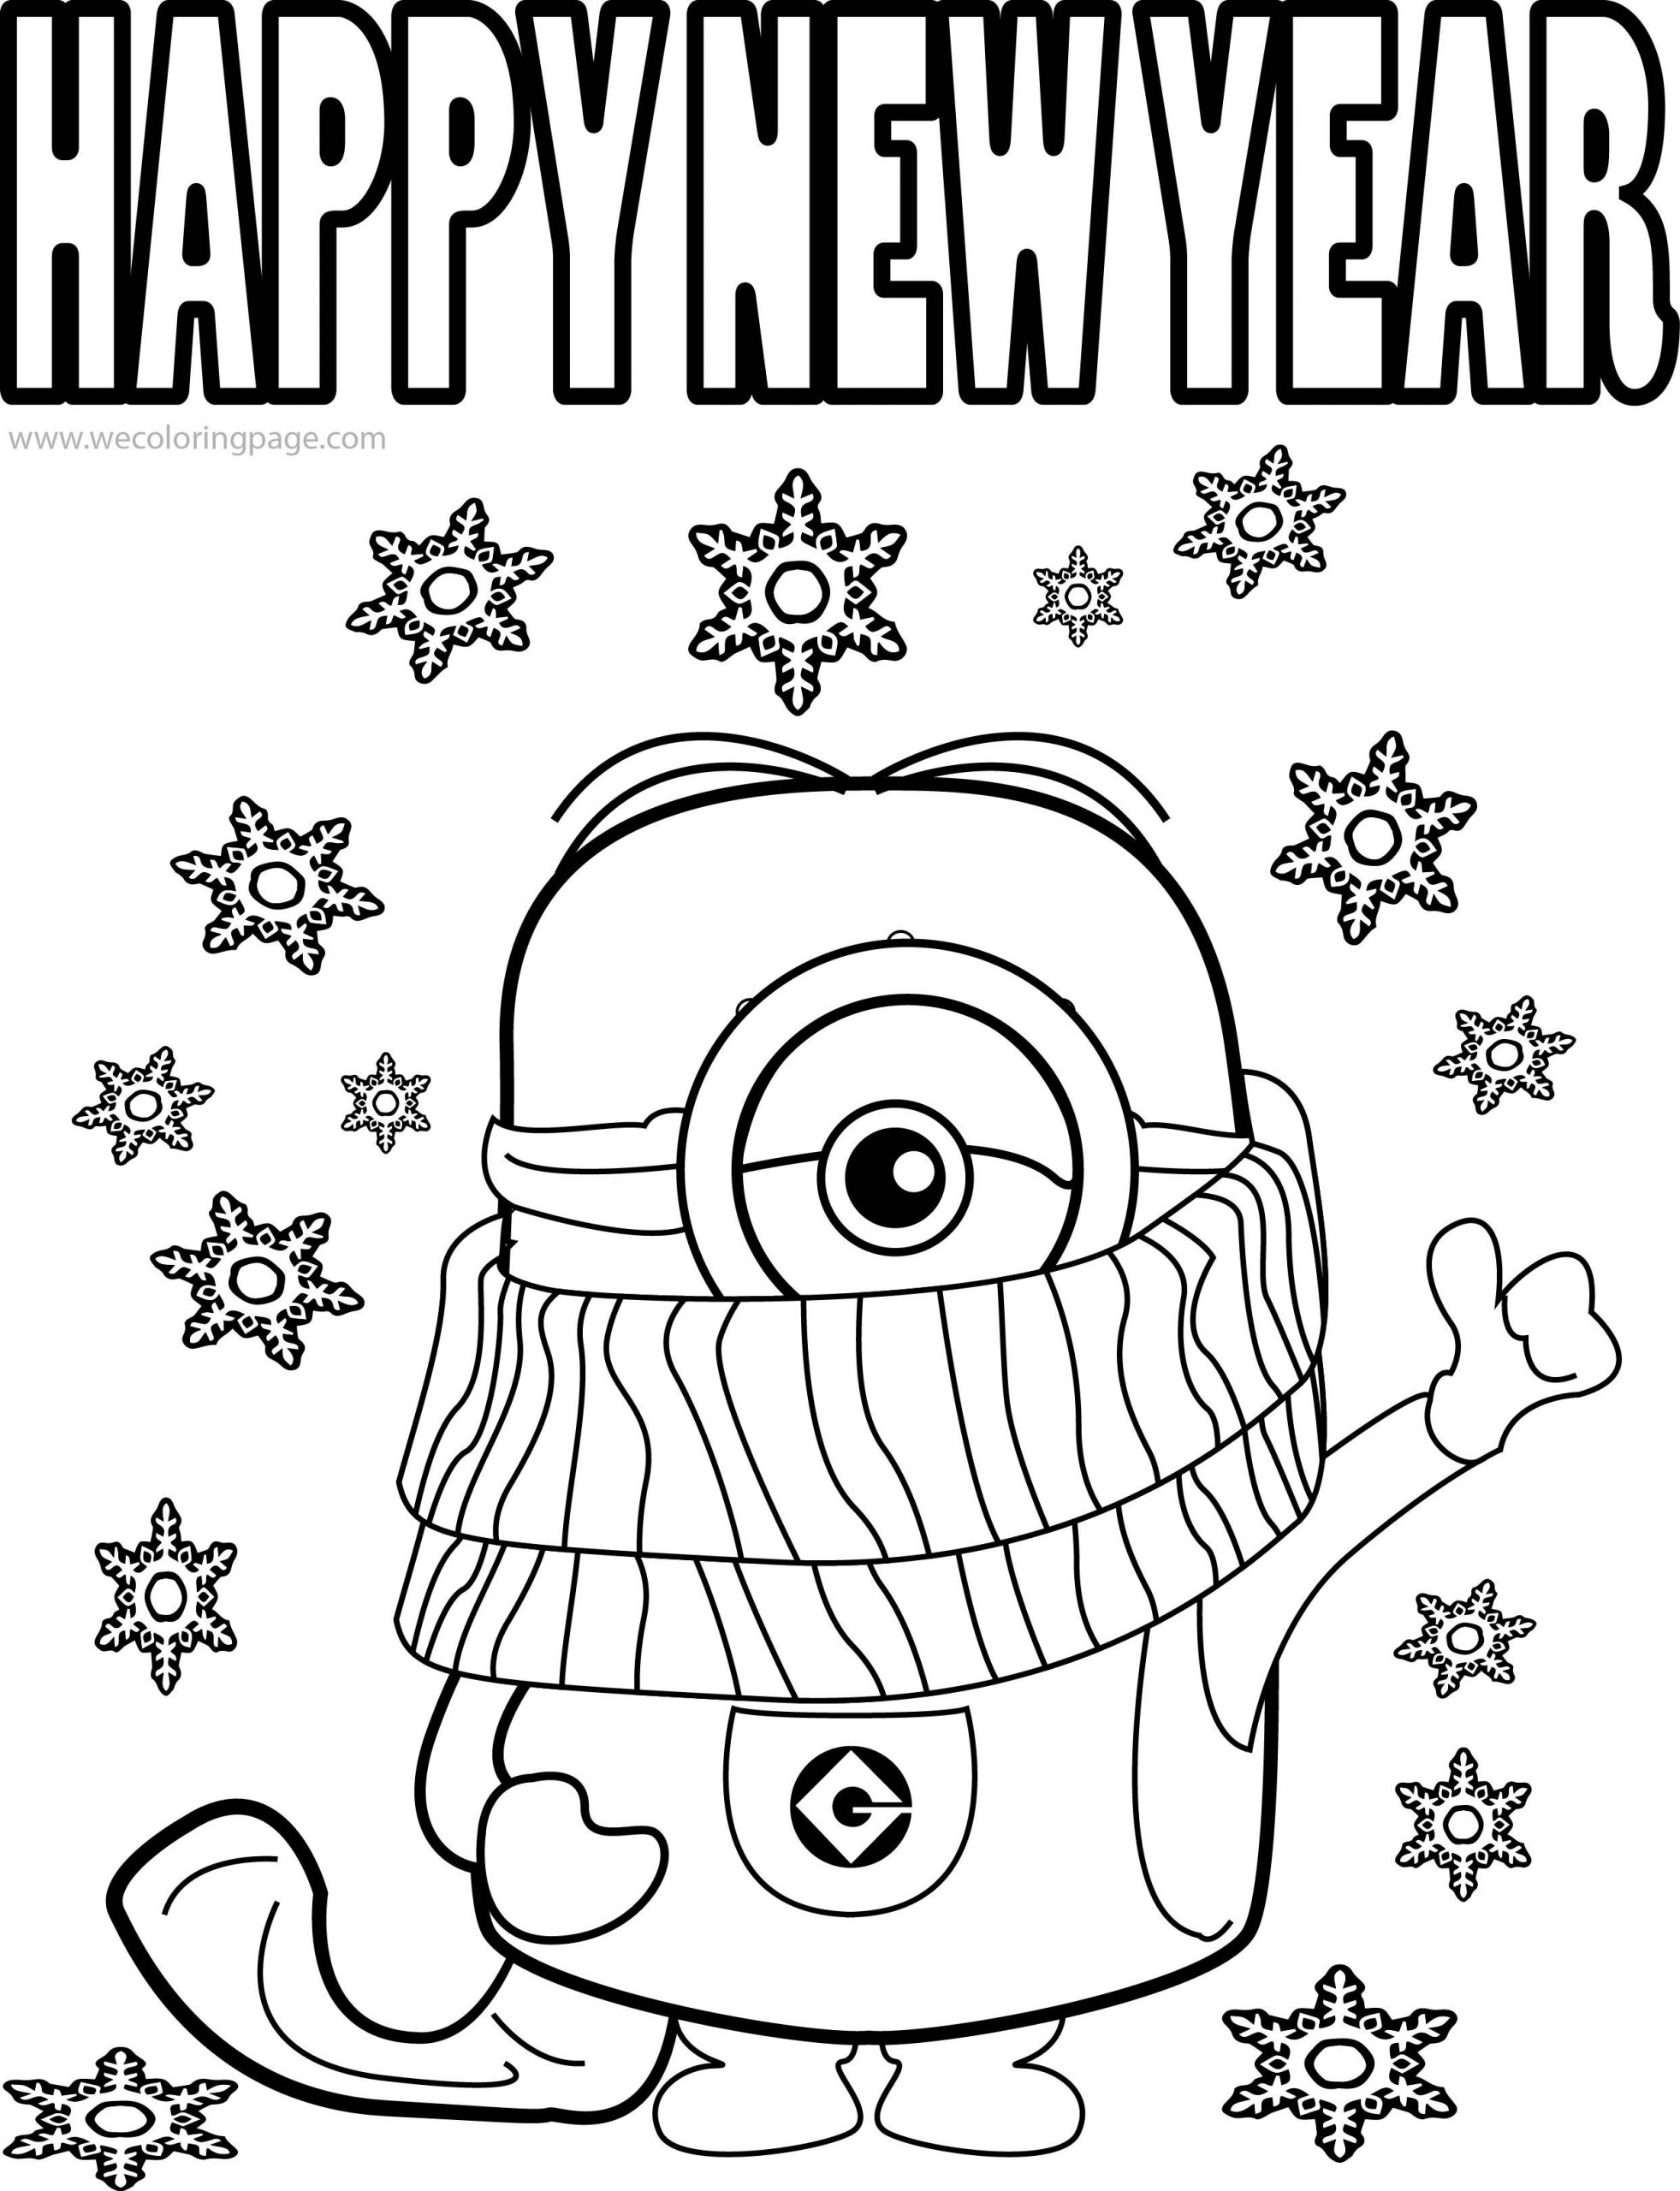 coloring page 2020 happy new year 2020 coloring pages coloring home 2020 coloring page